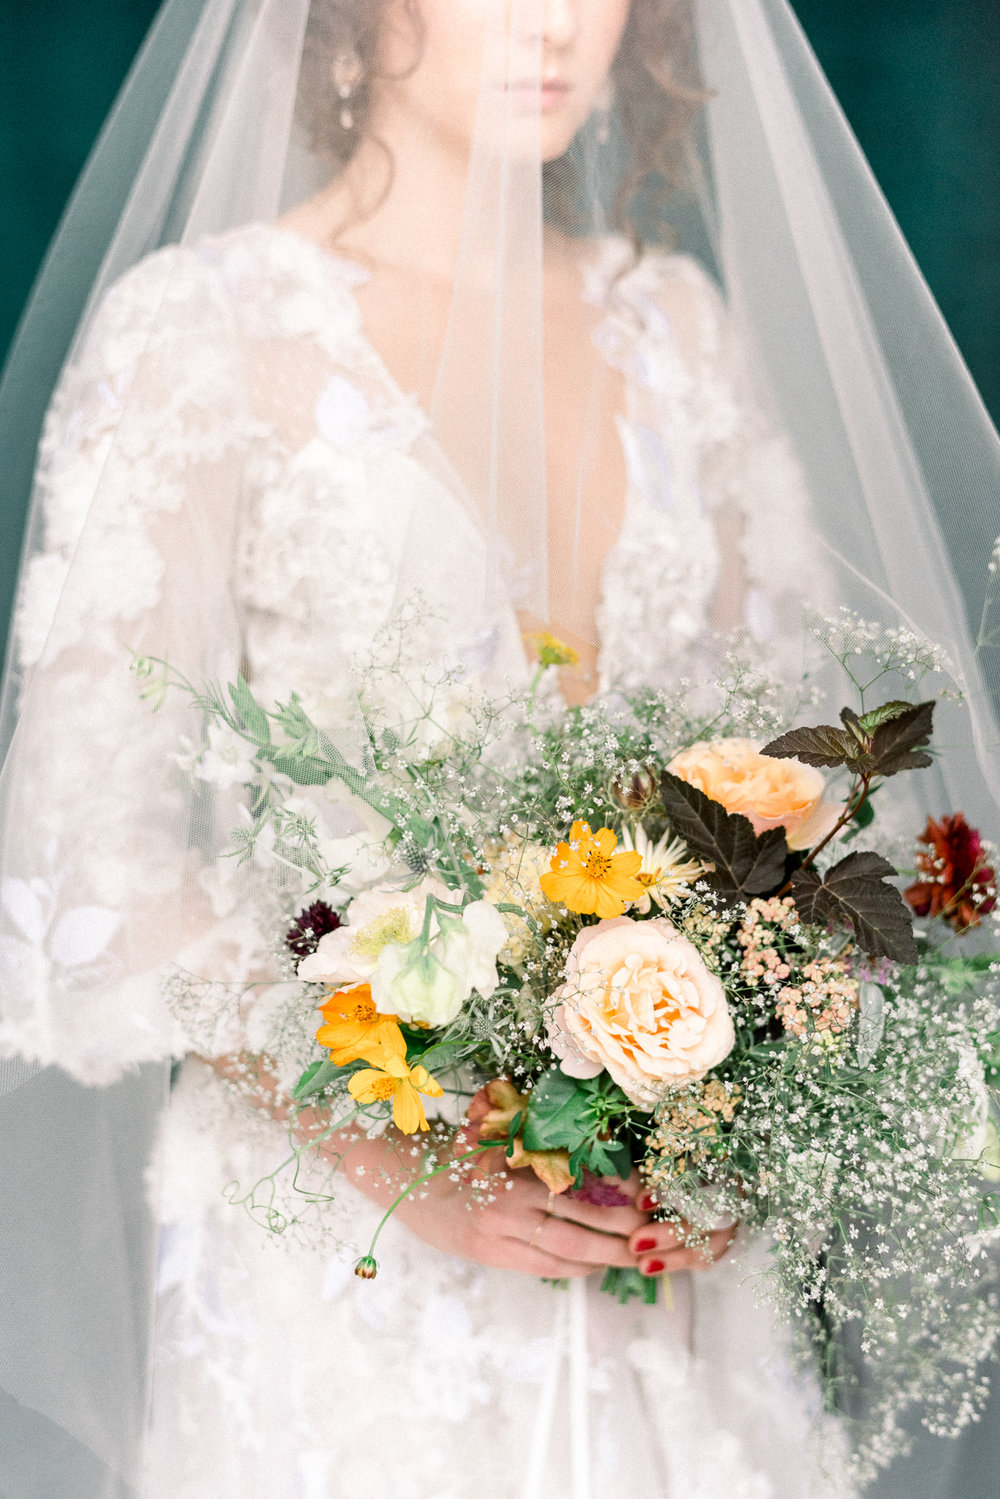 Flower Scout baby's breath bouquet and marchesa wedding gown